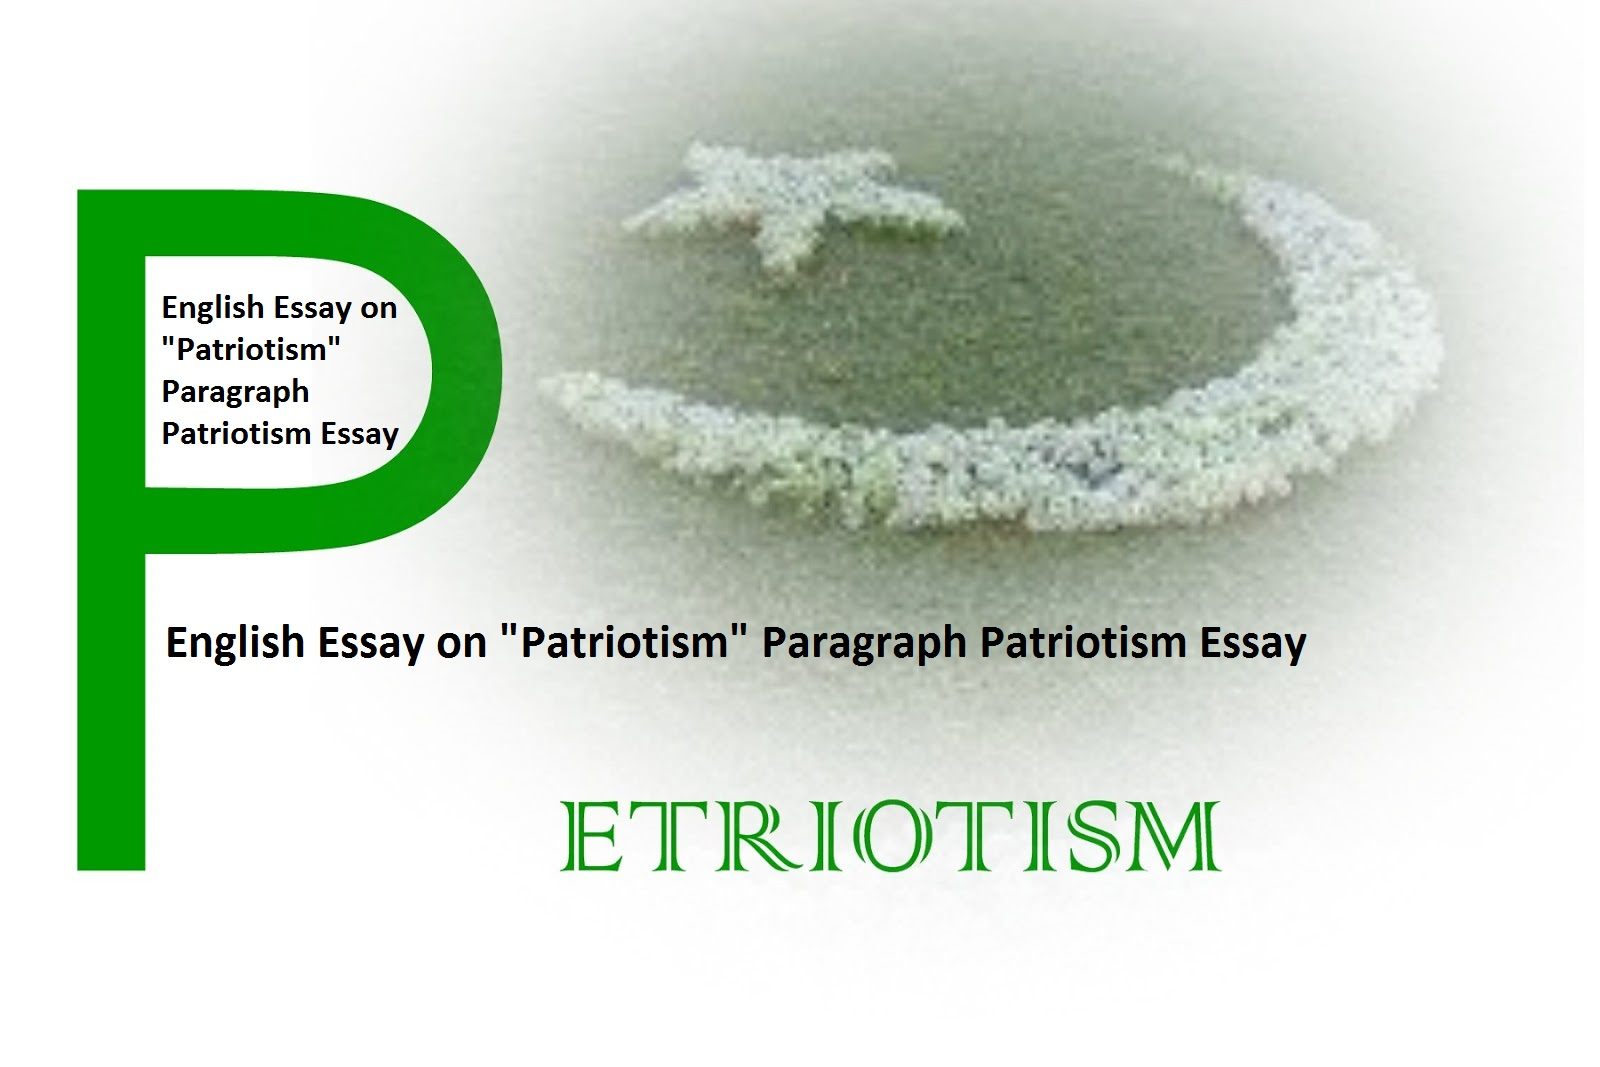 terrorism in pakistan essay in english with outline example